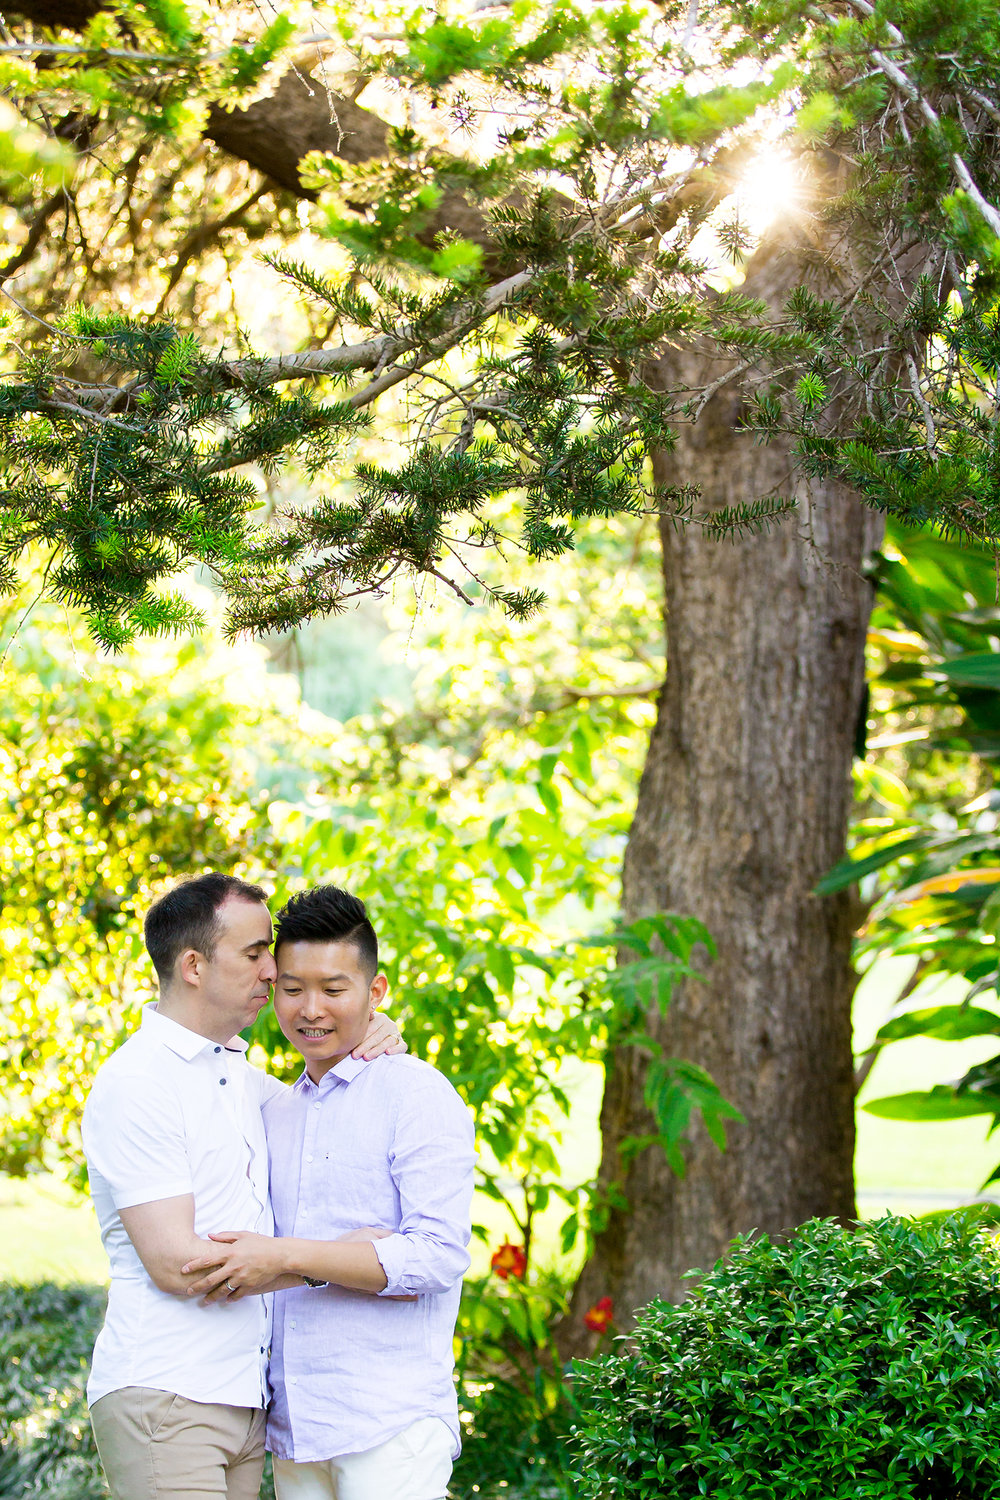 Sydney Gay Wedding Photographer - Jennifer Lam Photography (10).jpg